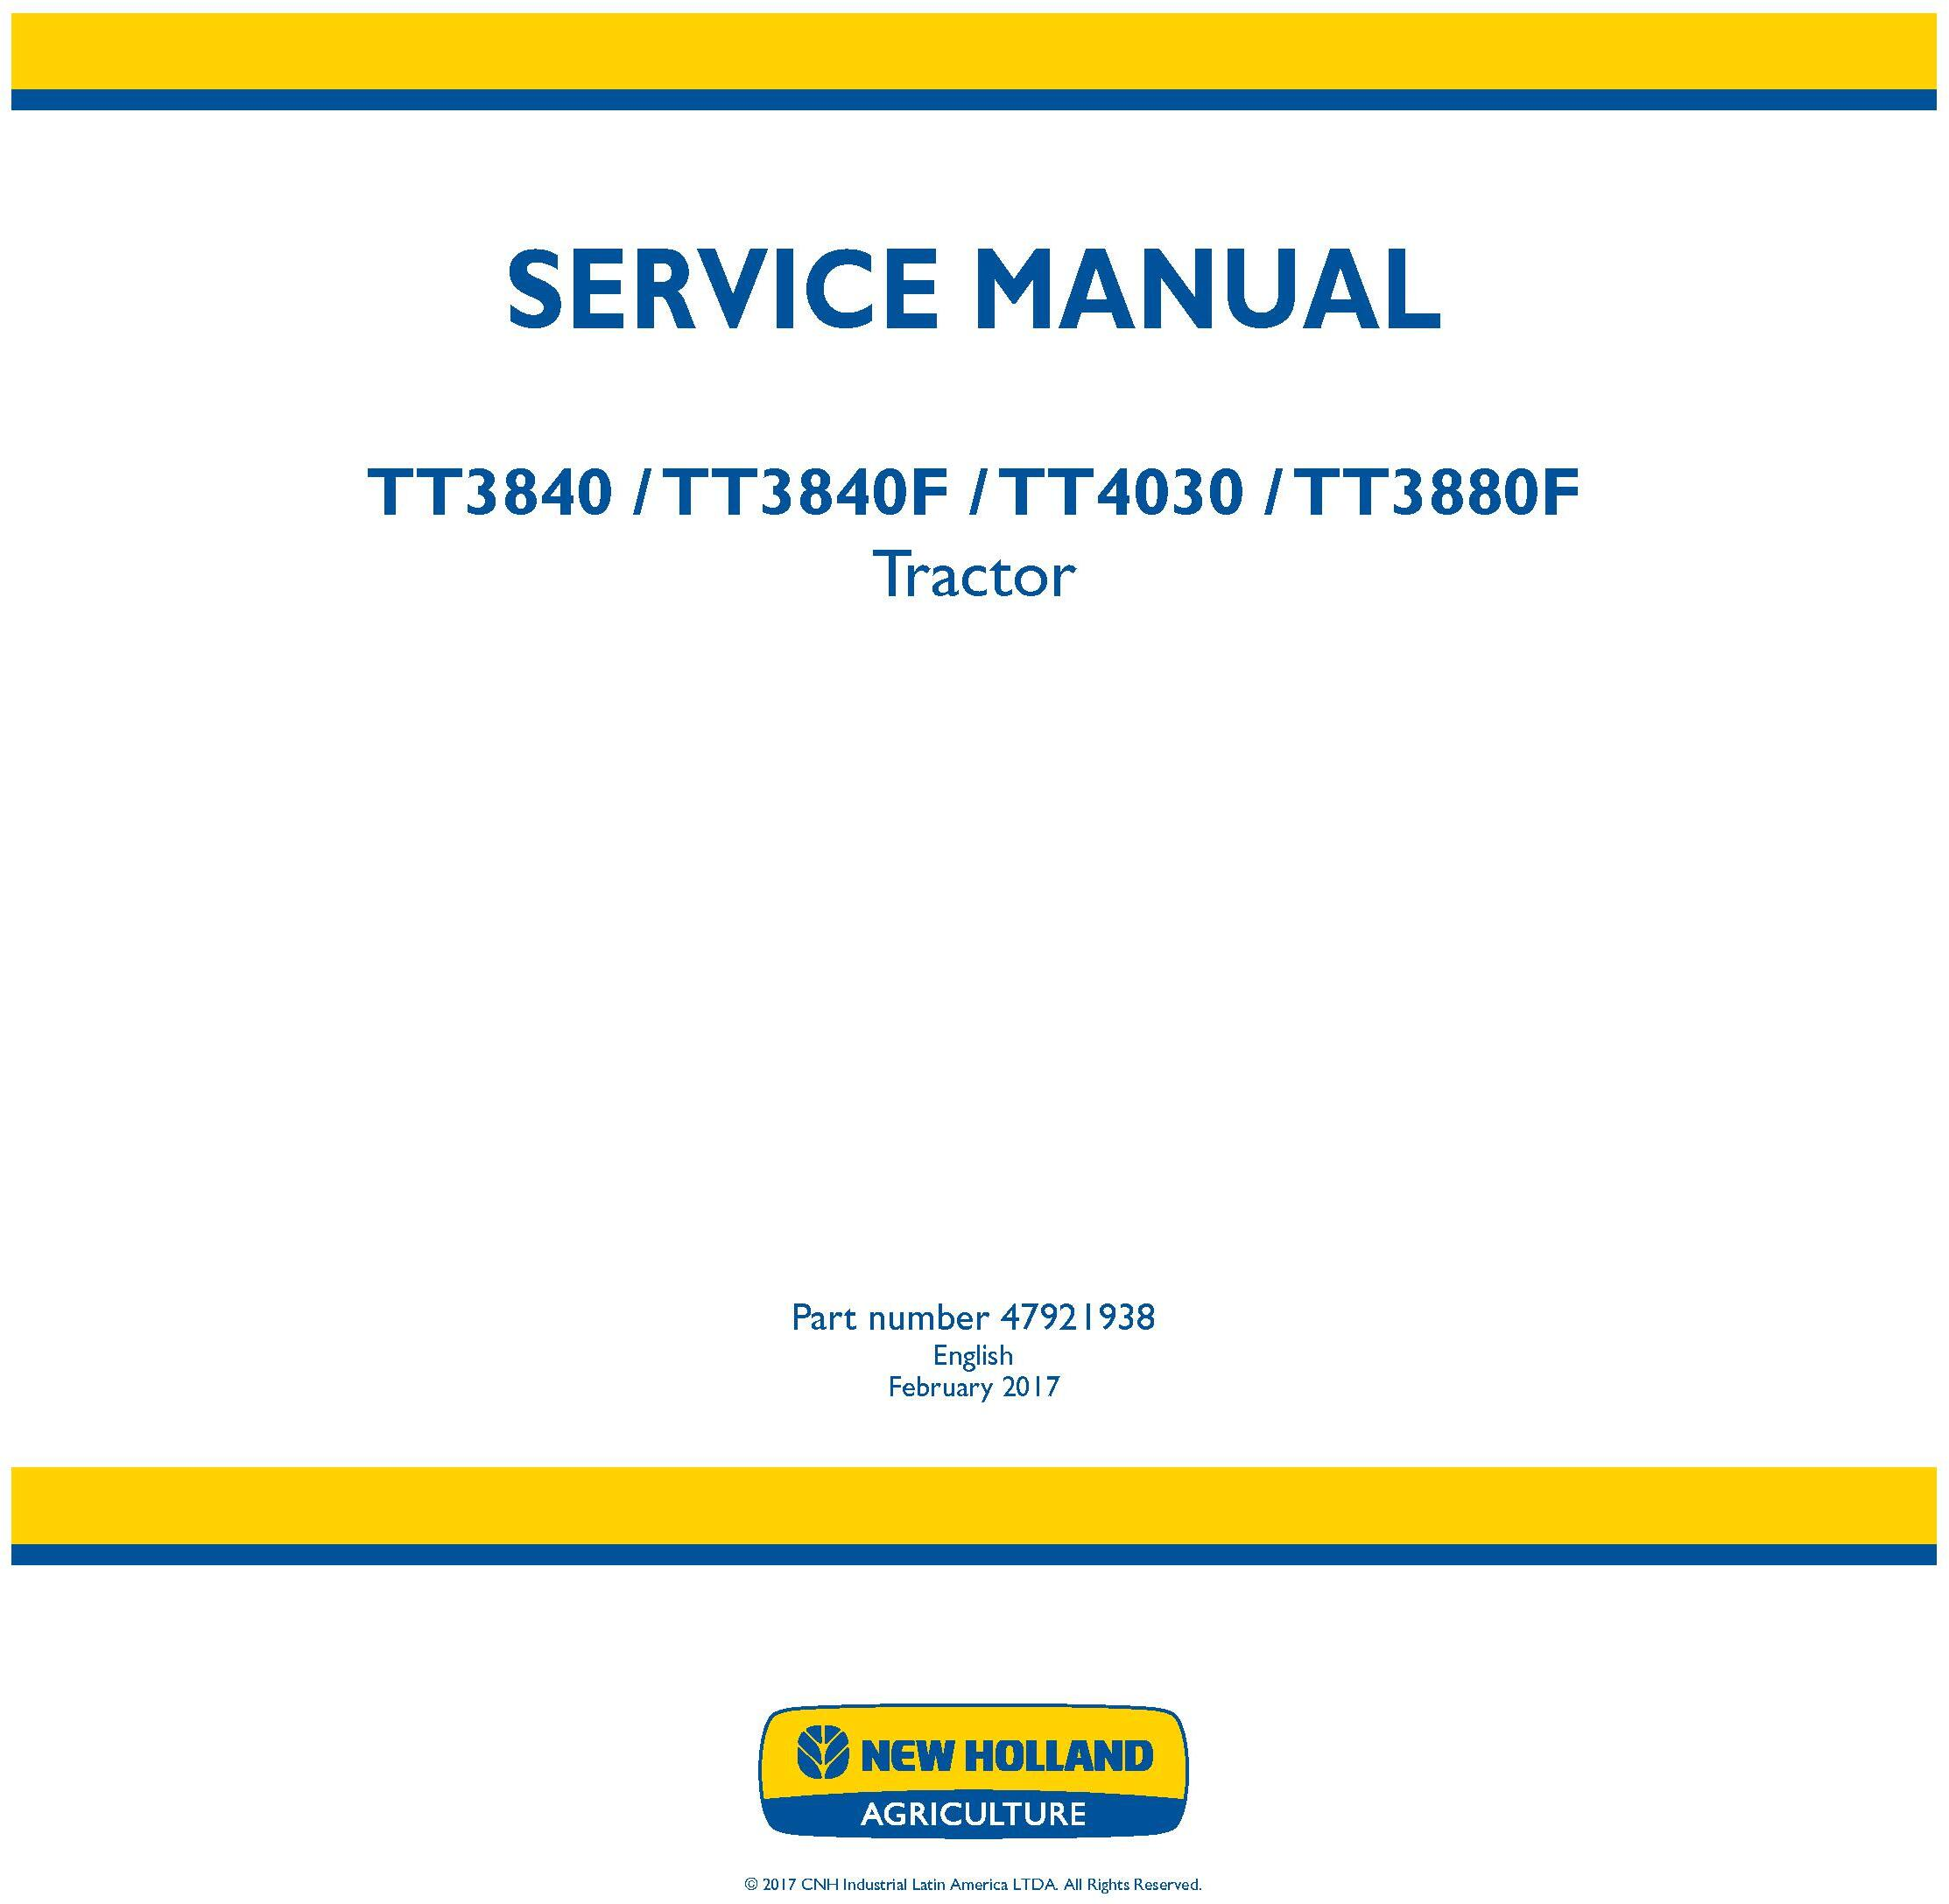 New Holland TT3840, TT3840F, TT4030, TT3880F Tractor Service Manual (Latin America) - 19459